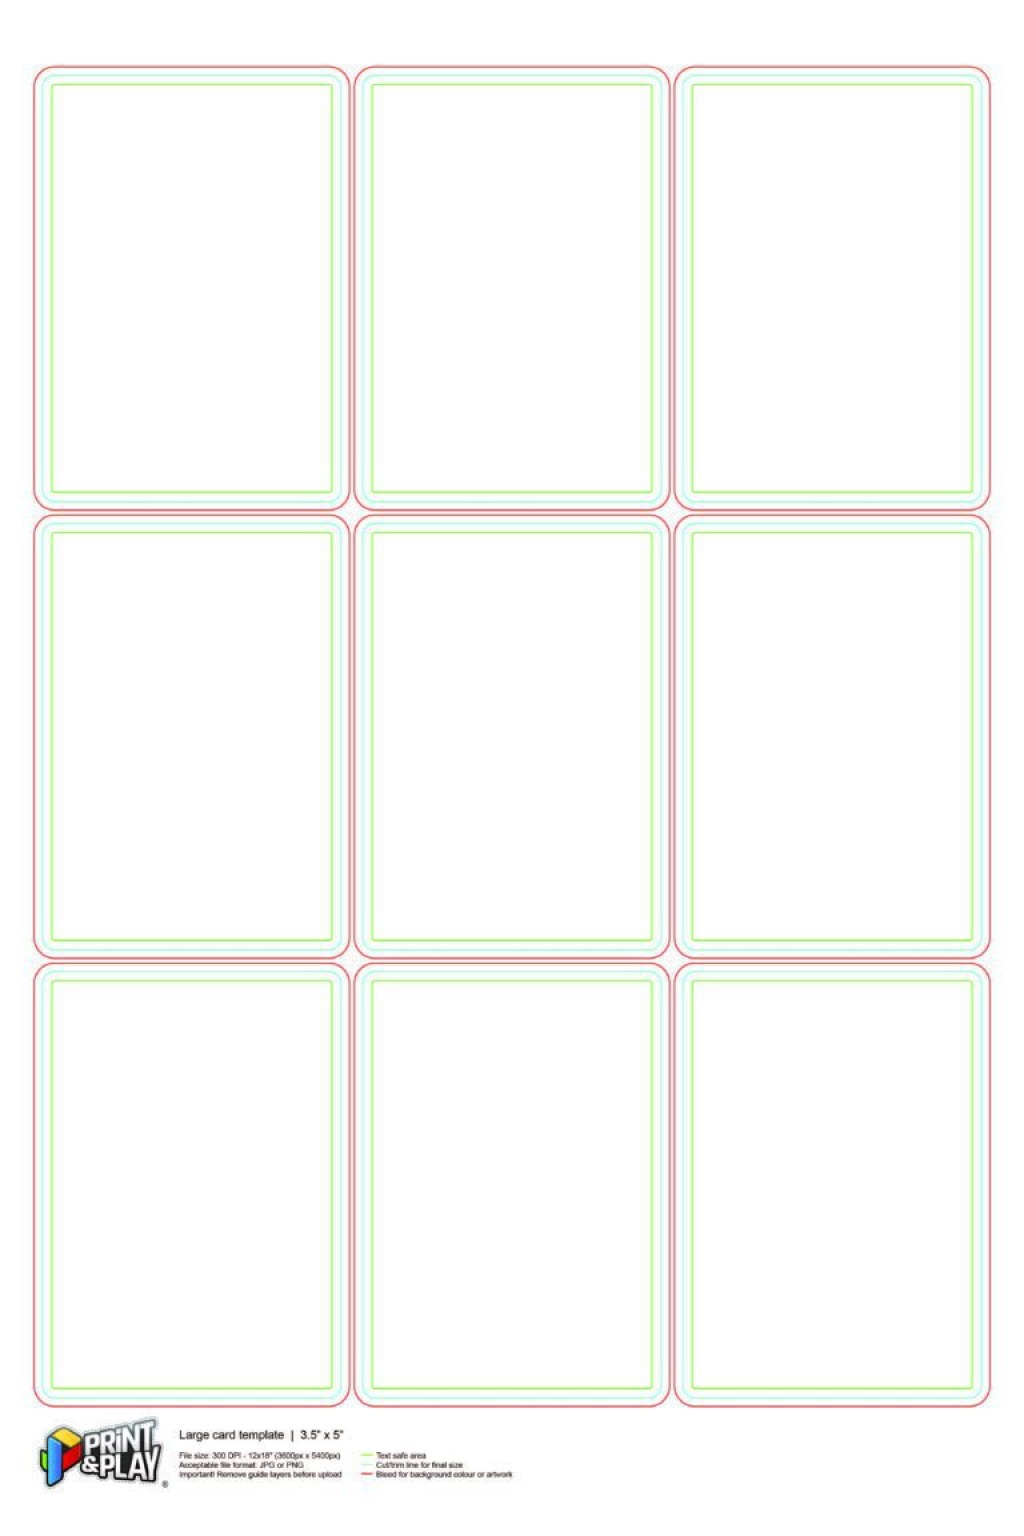 000 Stupendou Playing Card Size Template Idea  Game StandardLarge